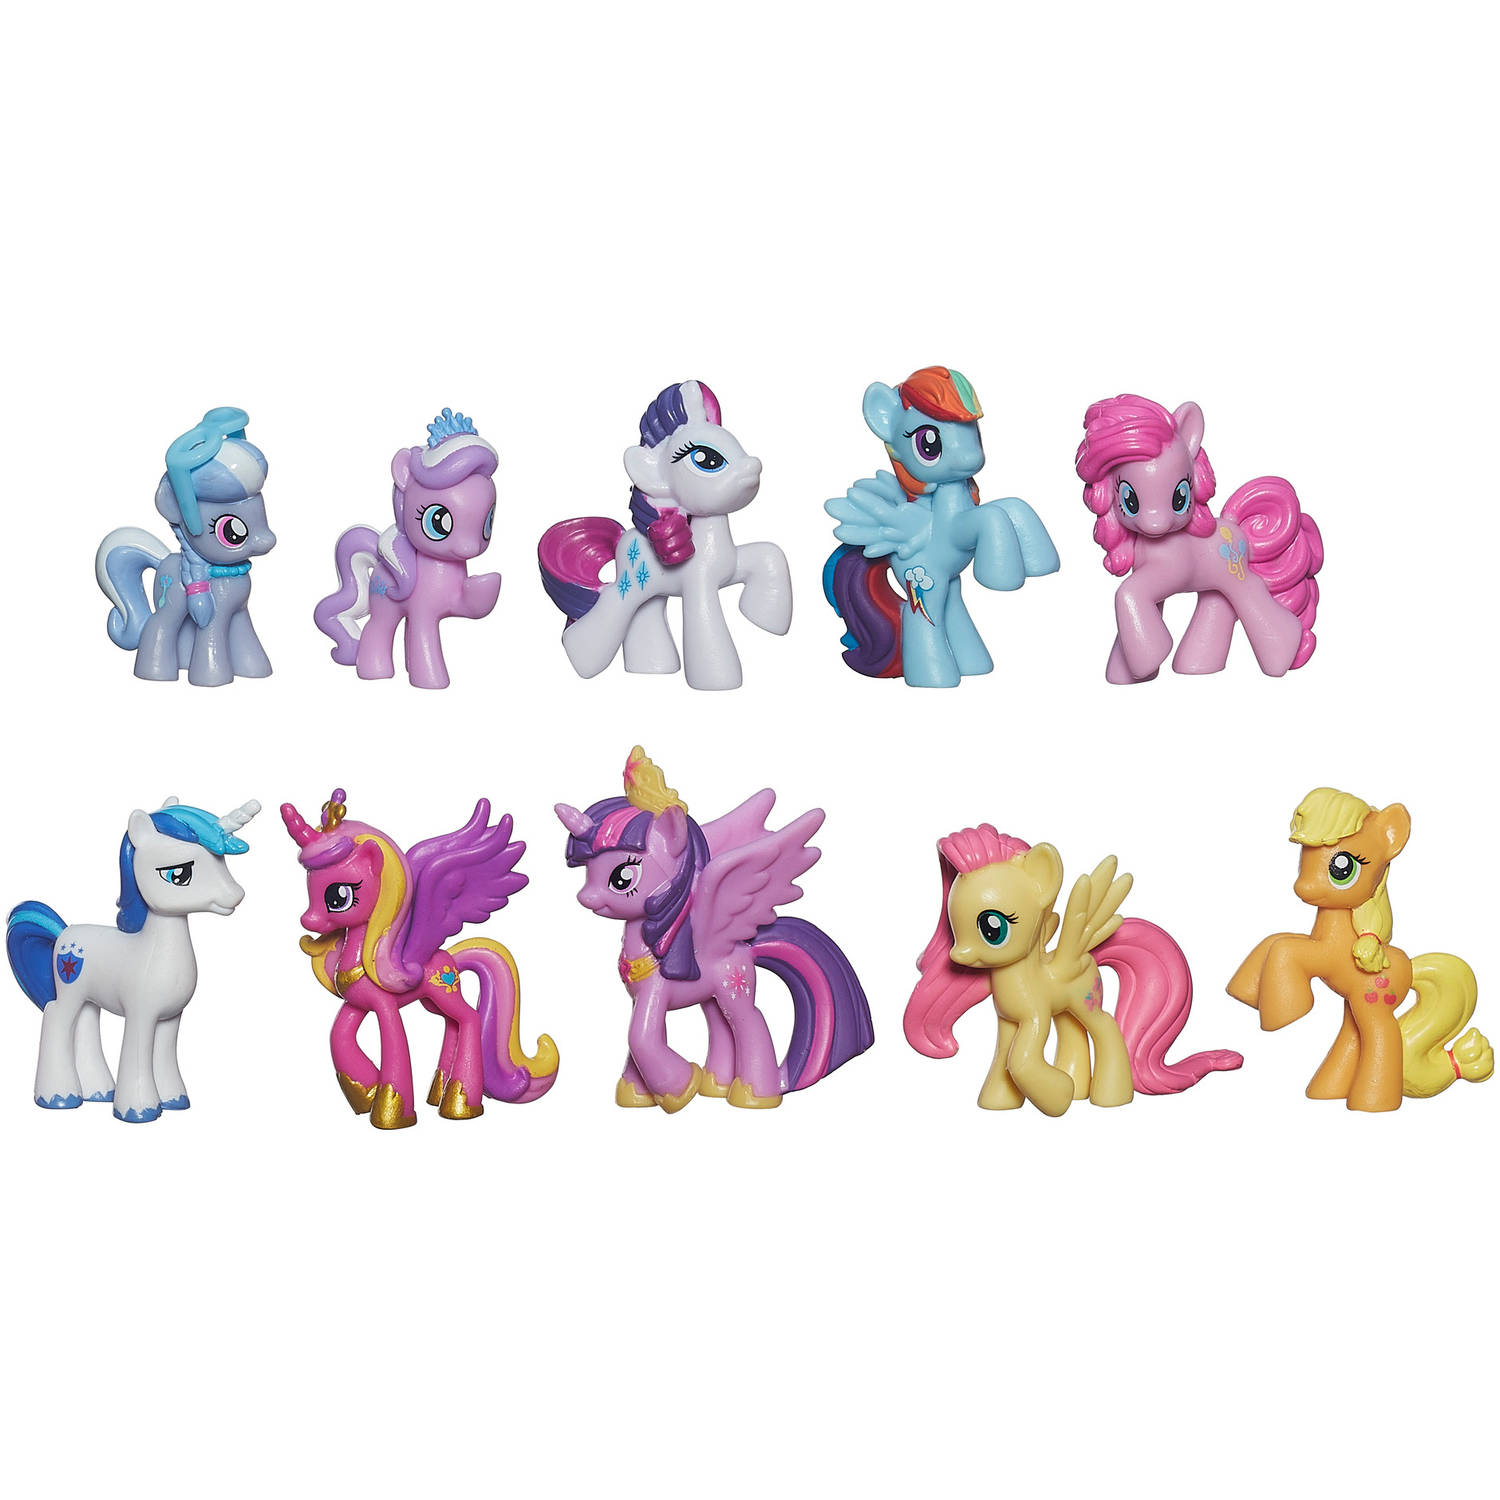 Figurine clipart data collection Princess Twilight com and Little